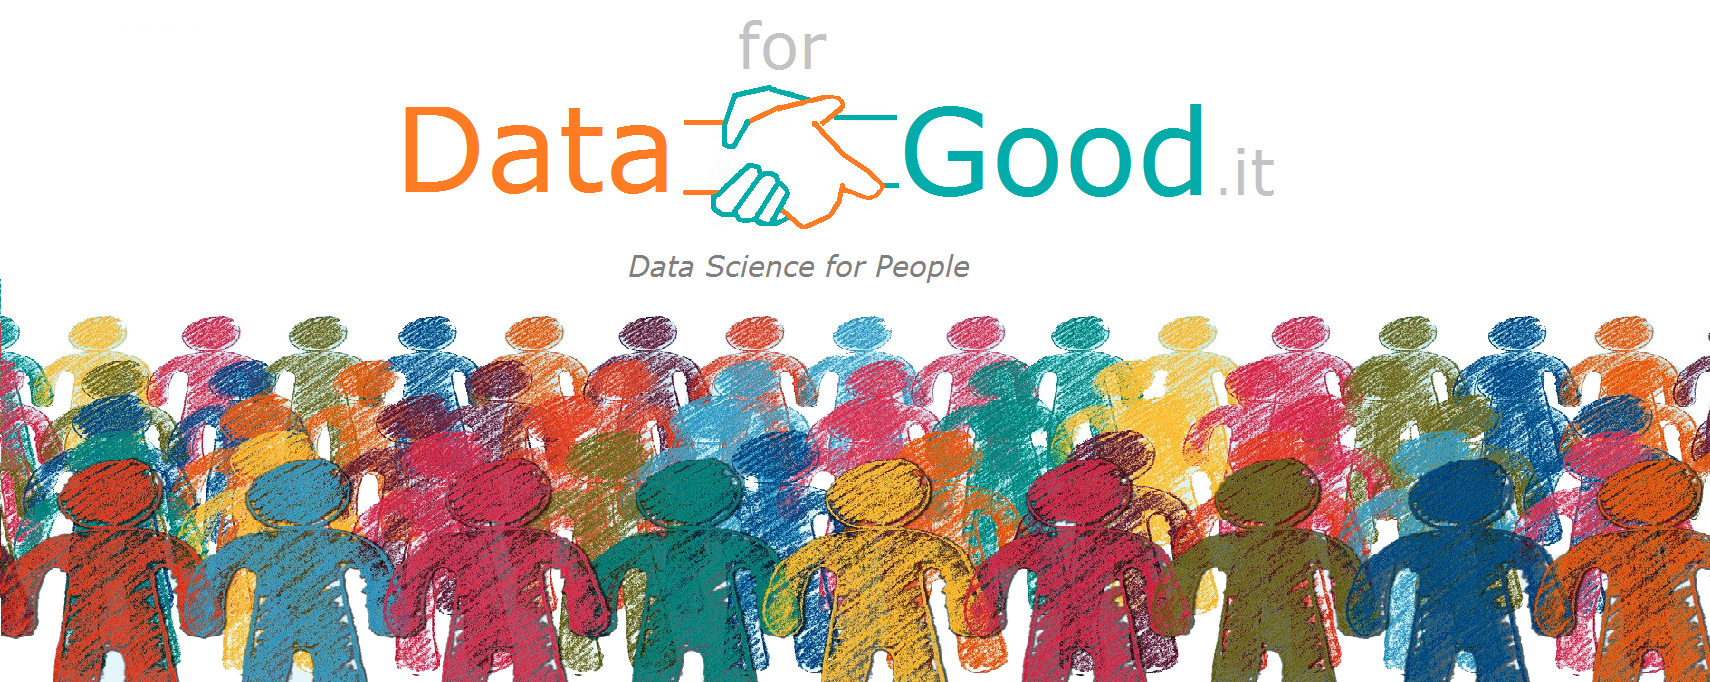 Data for Good Italia